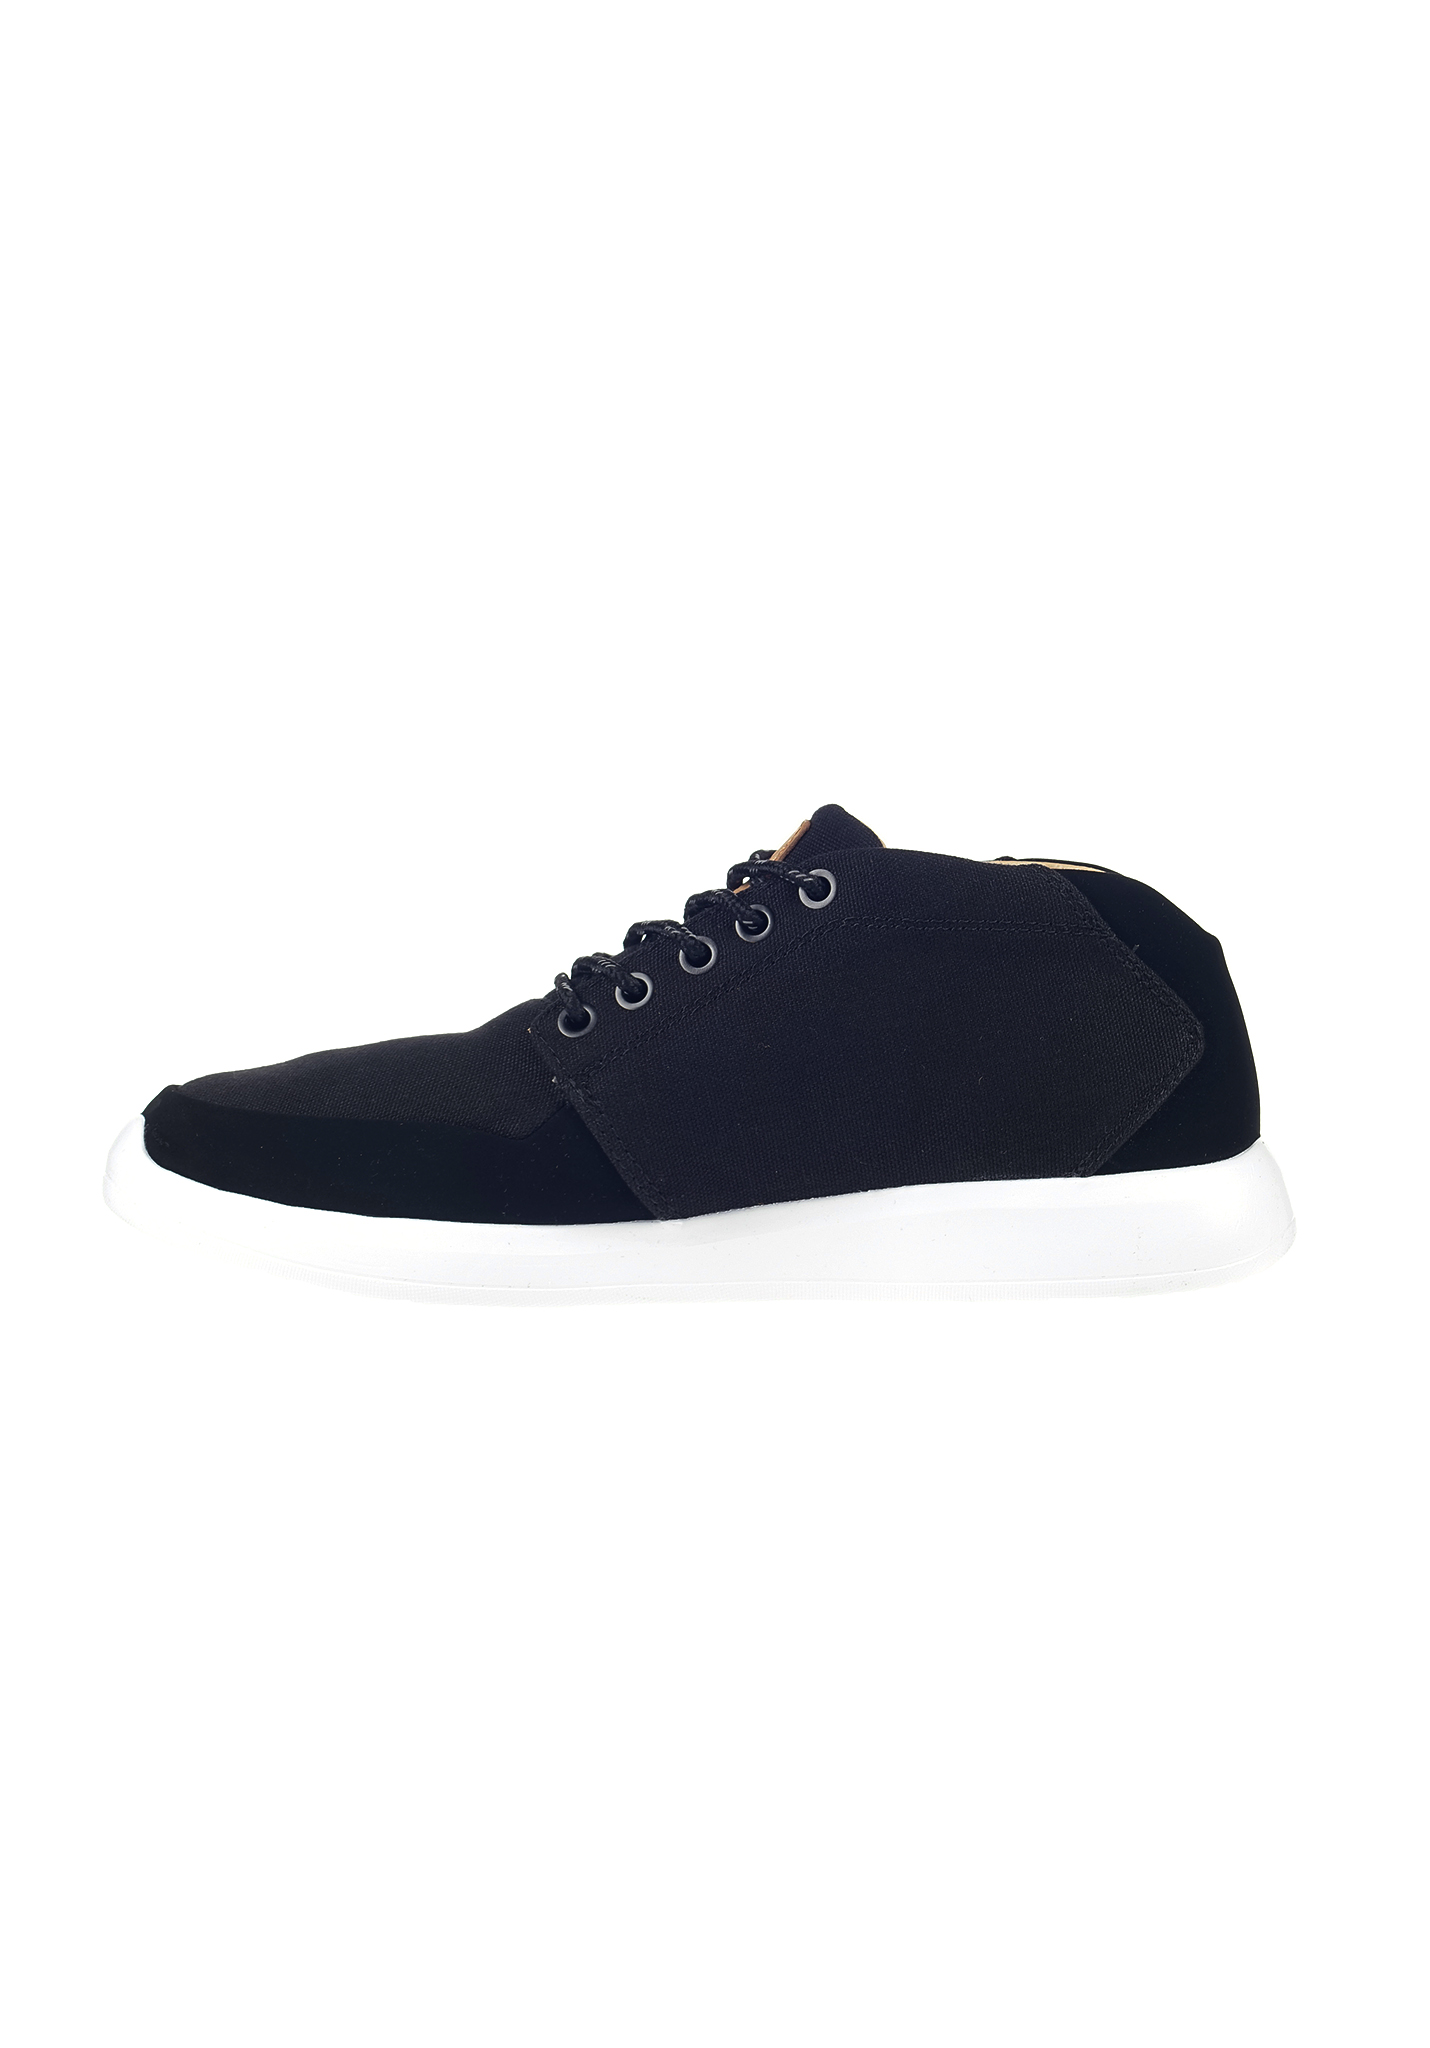 K1X Meet The Parents Herren Lightweight Herren Parents Damen Sneaker Turnschuhe Freizeit fc4d8f